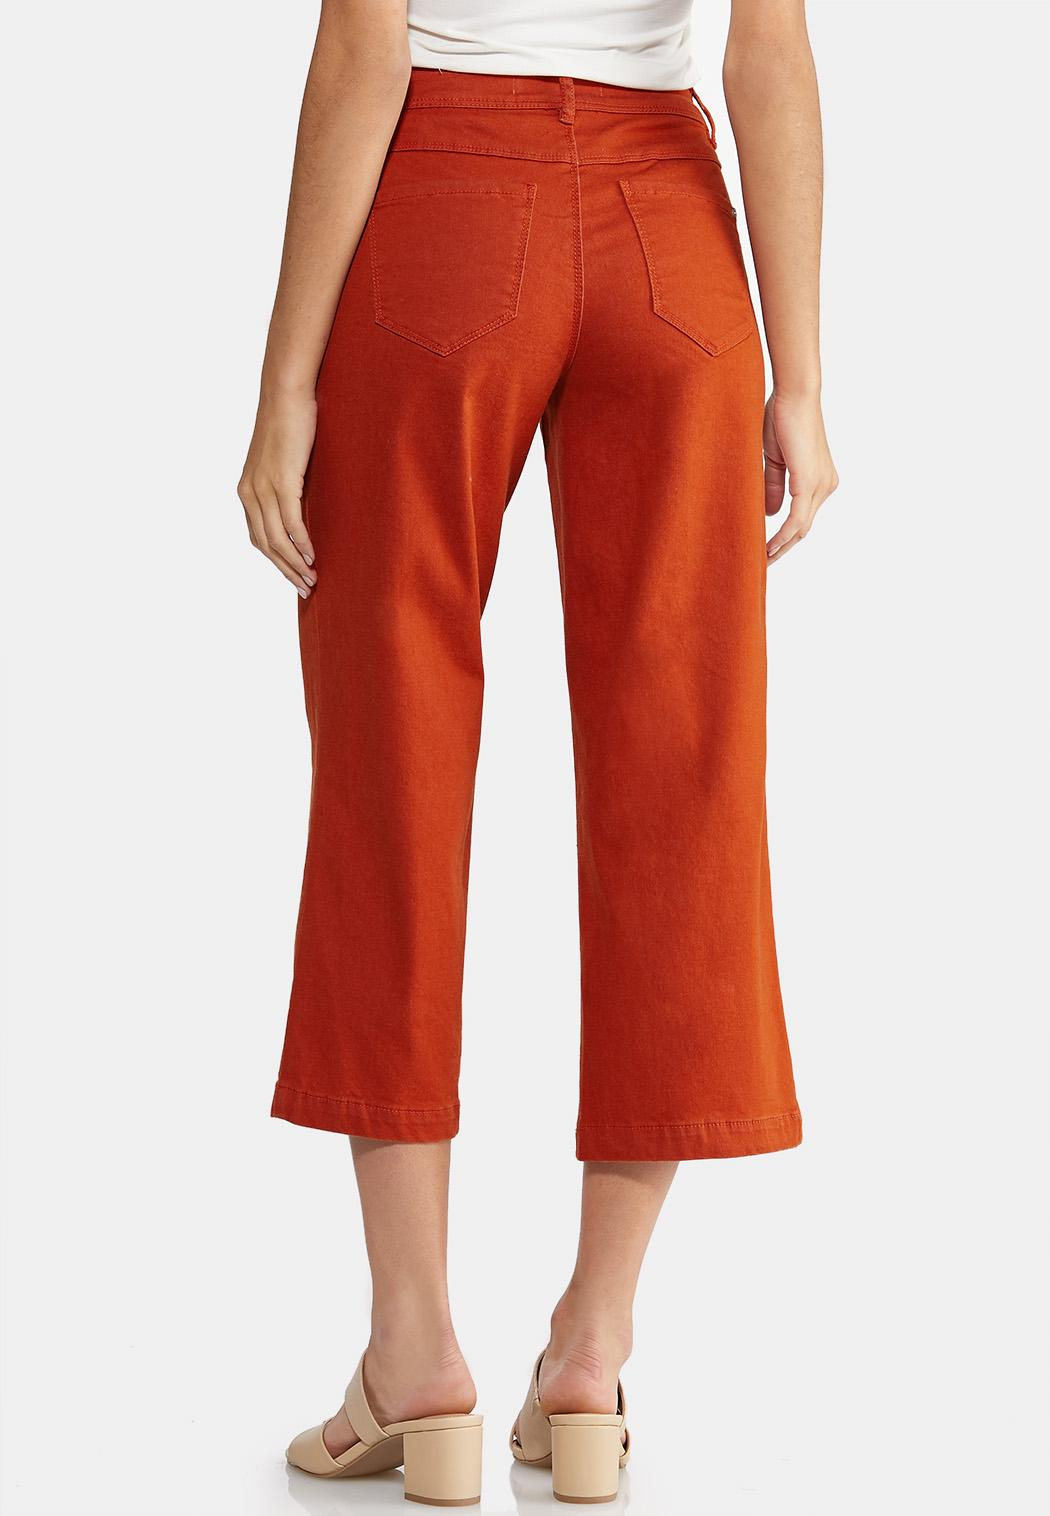 Wide Leg Colored Jeans (Item #43946052)